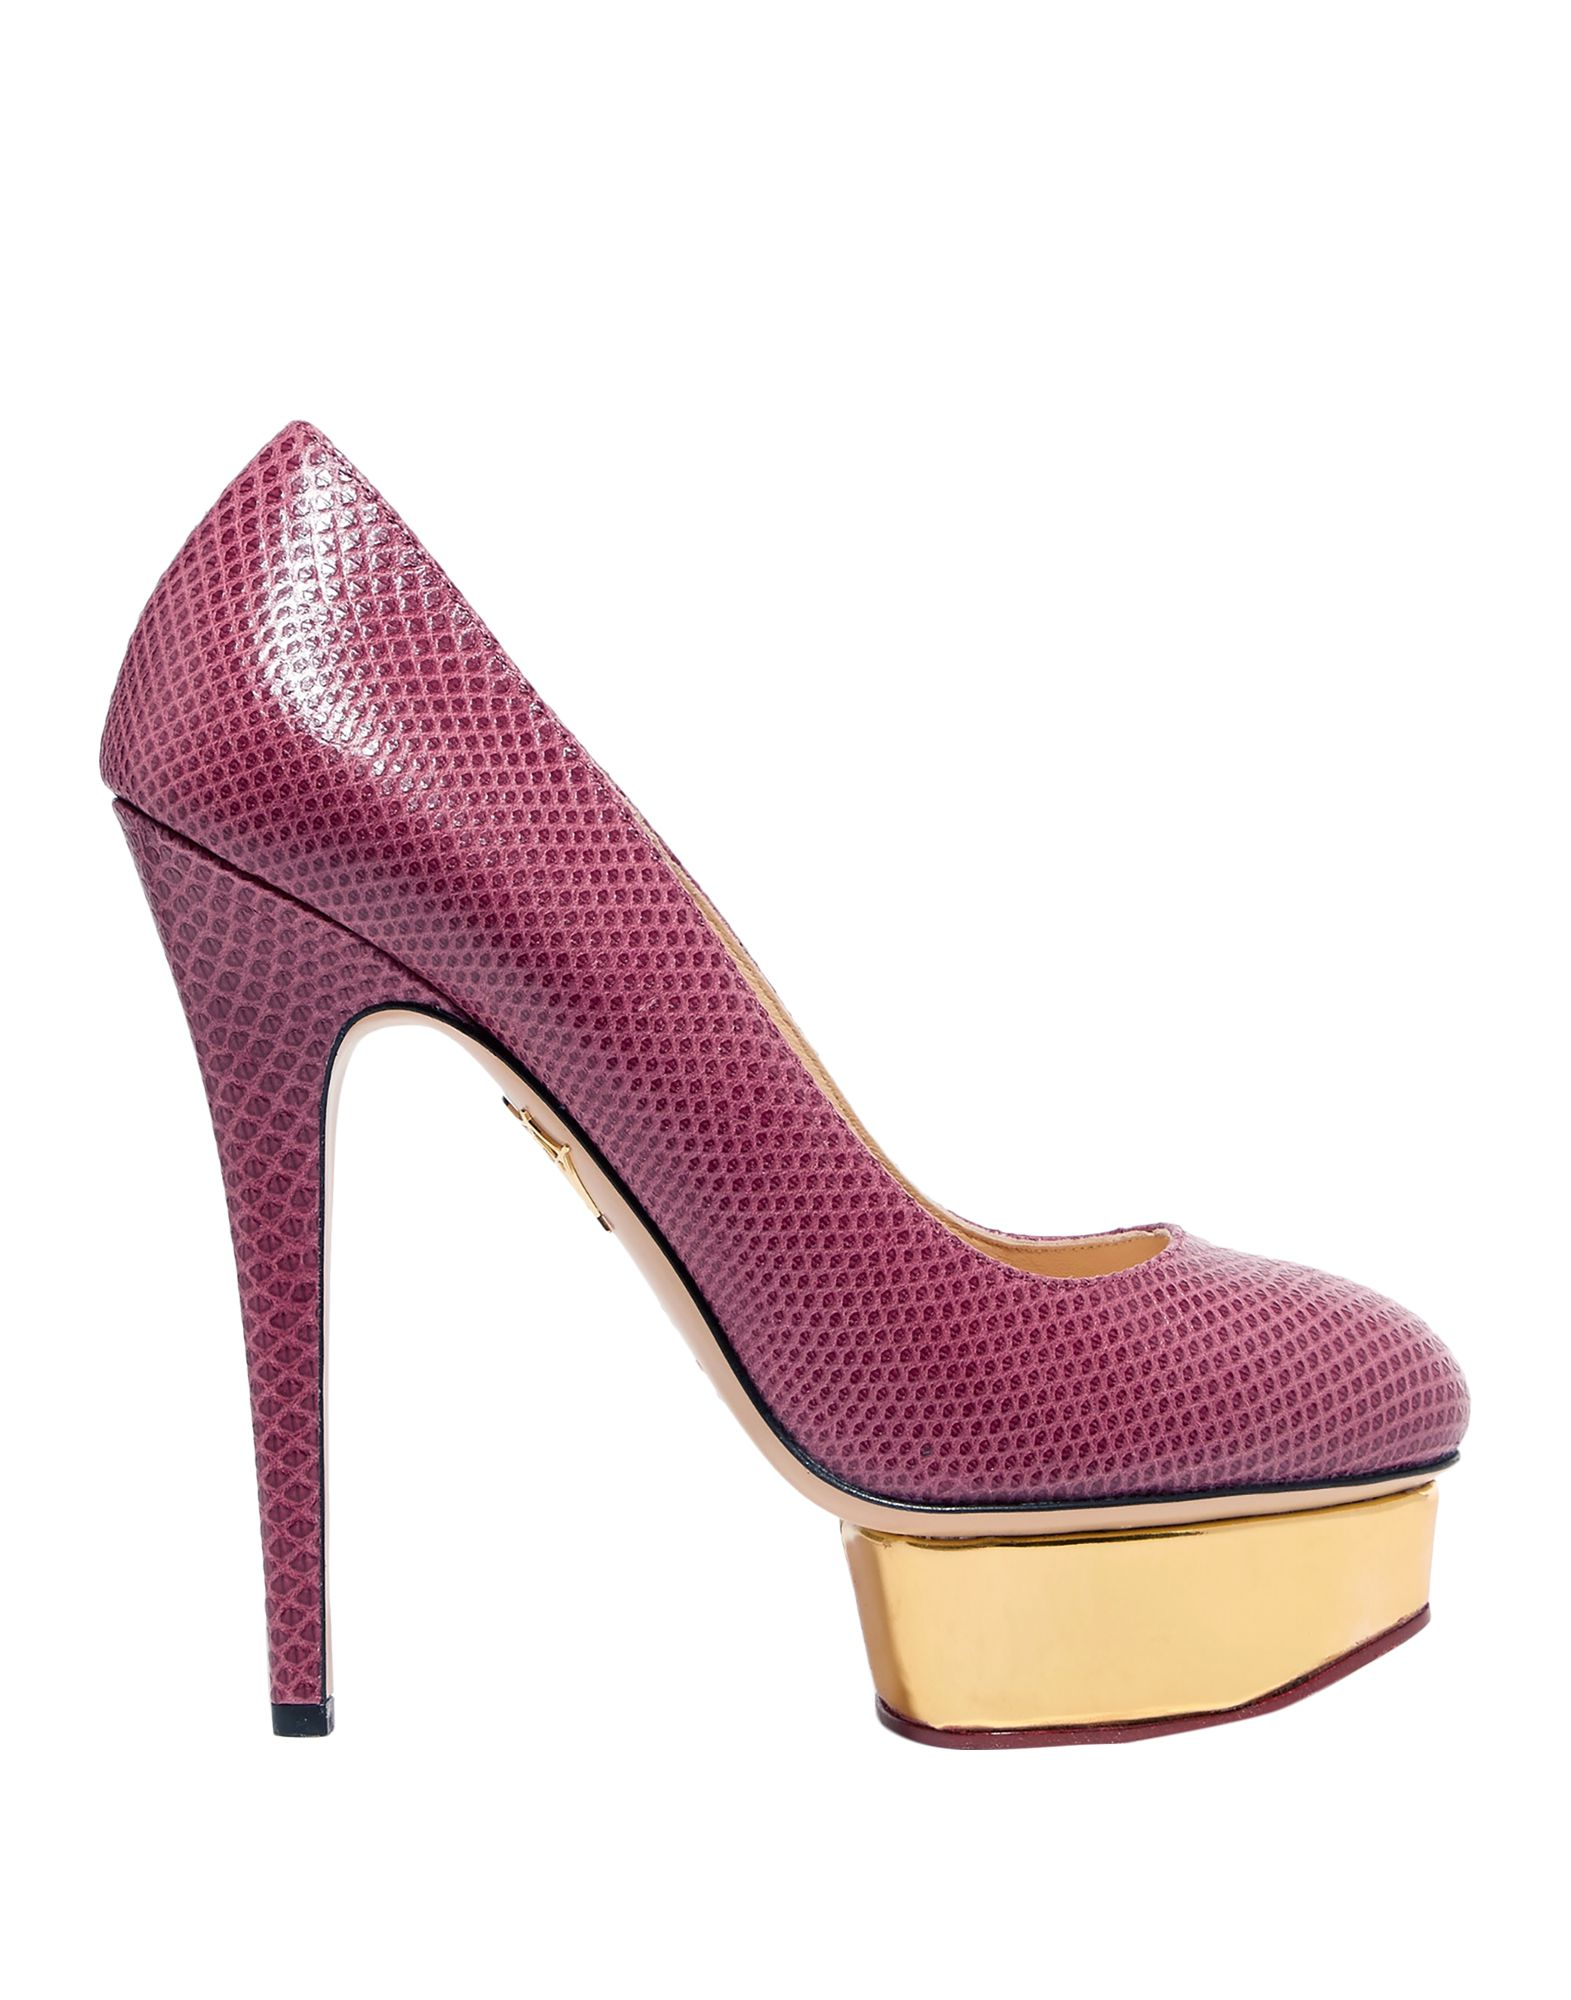 Charlotte Olympia Donna - 11553495RB